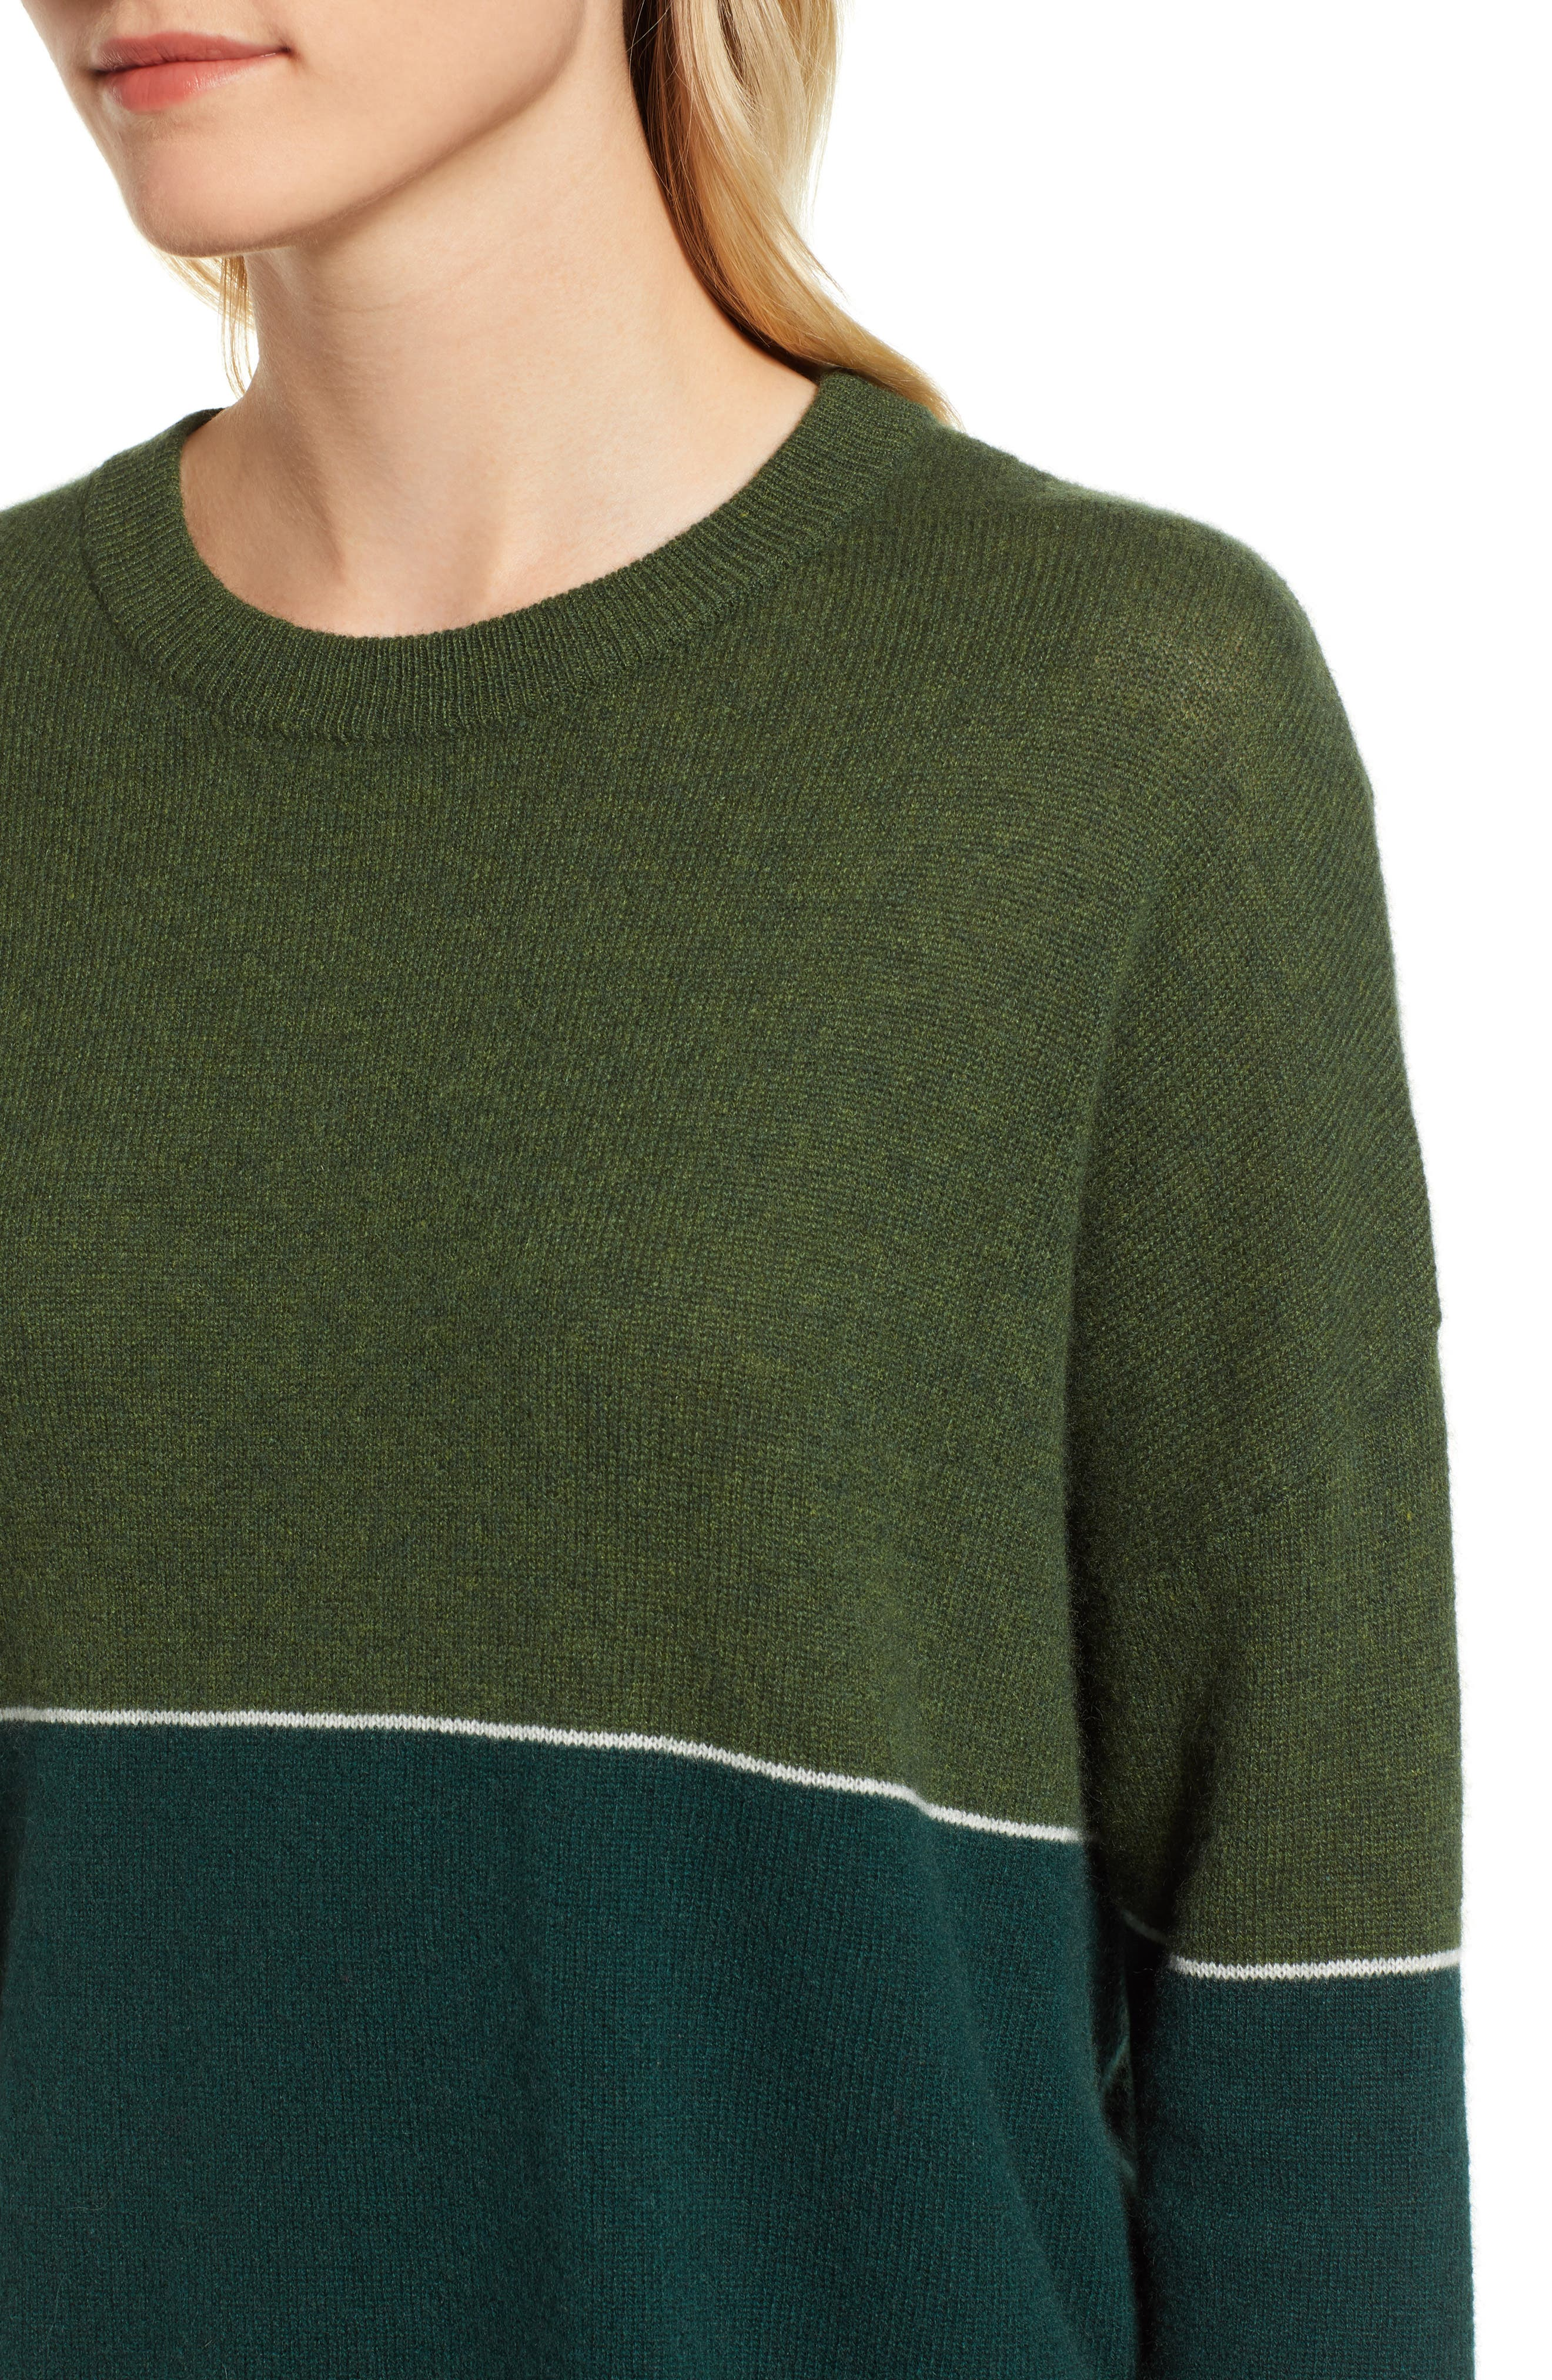 Cashmere Colorblock Sweater,                             Alternate thumbnail 4, color,                             FOREST/ ARMY